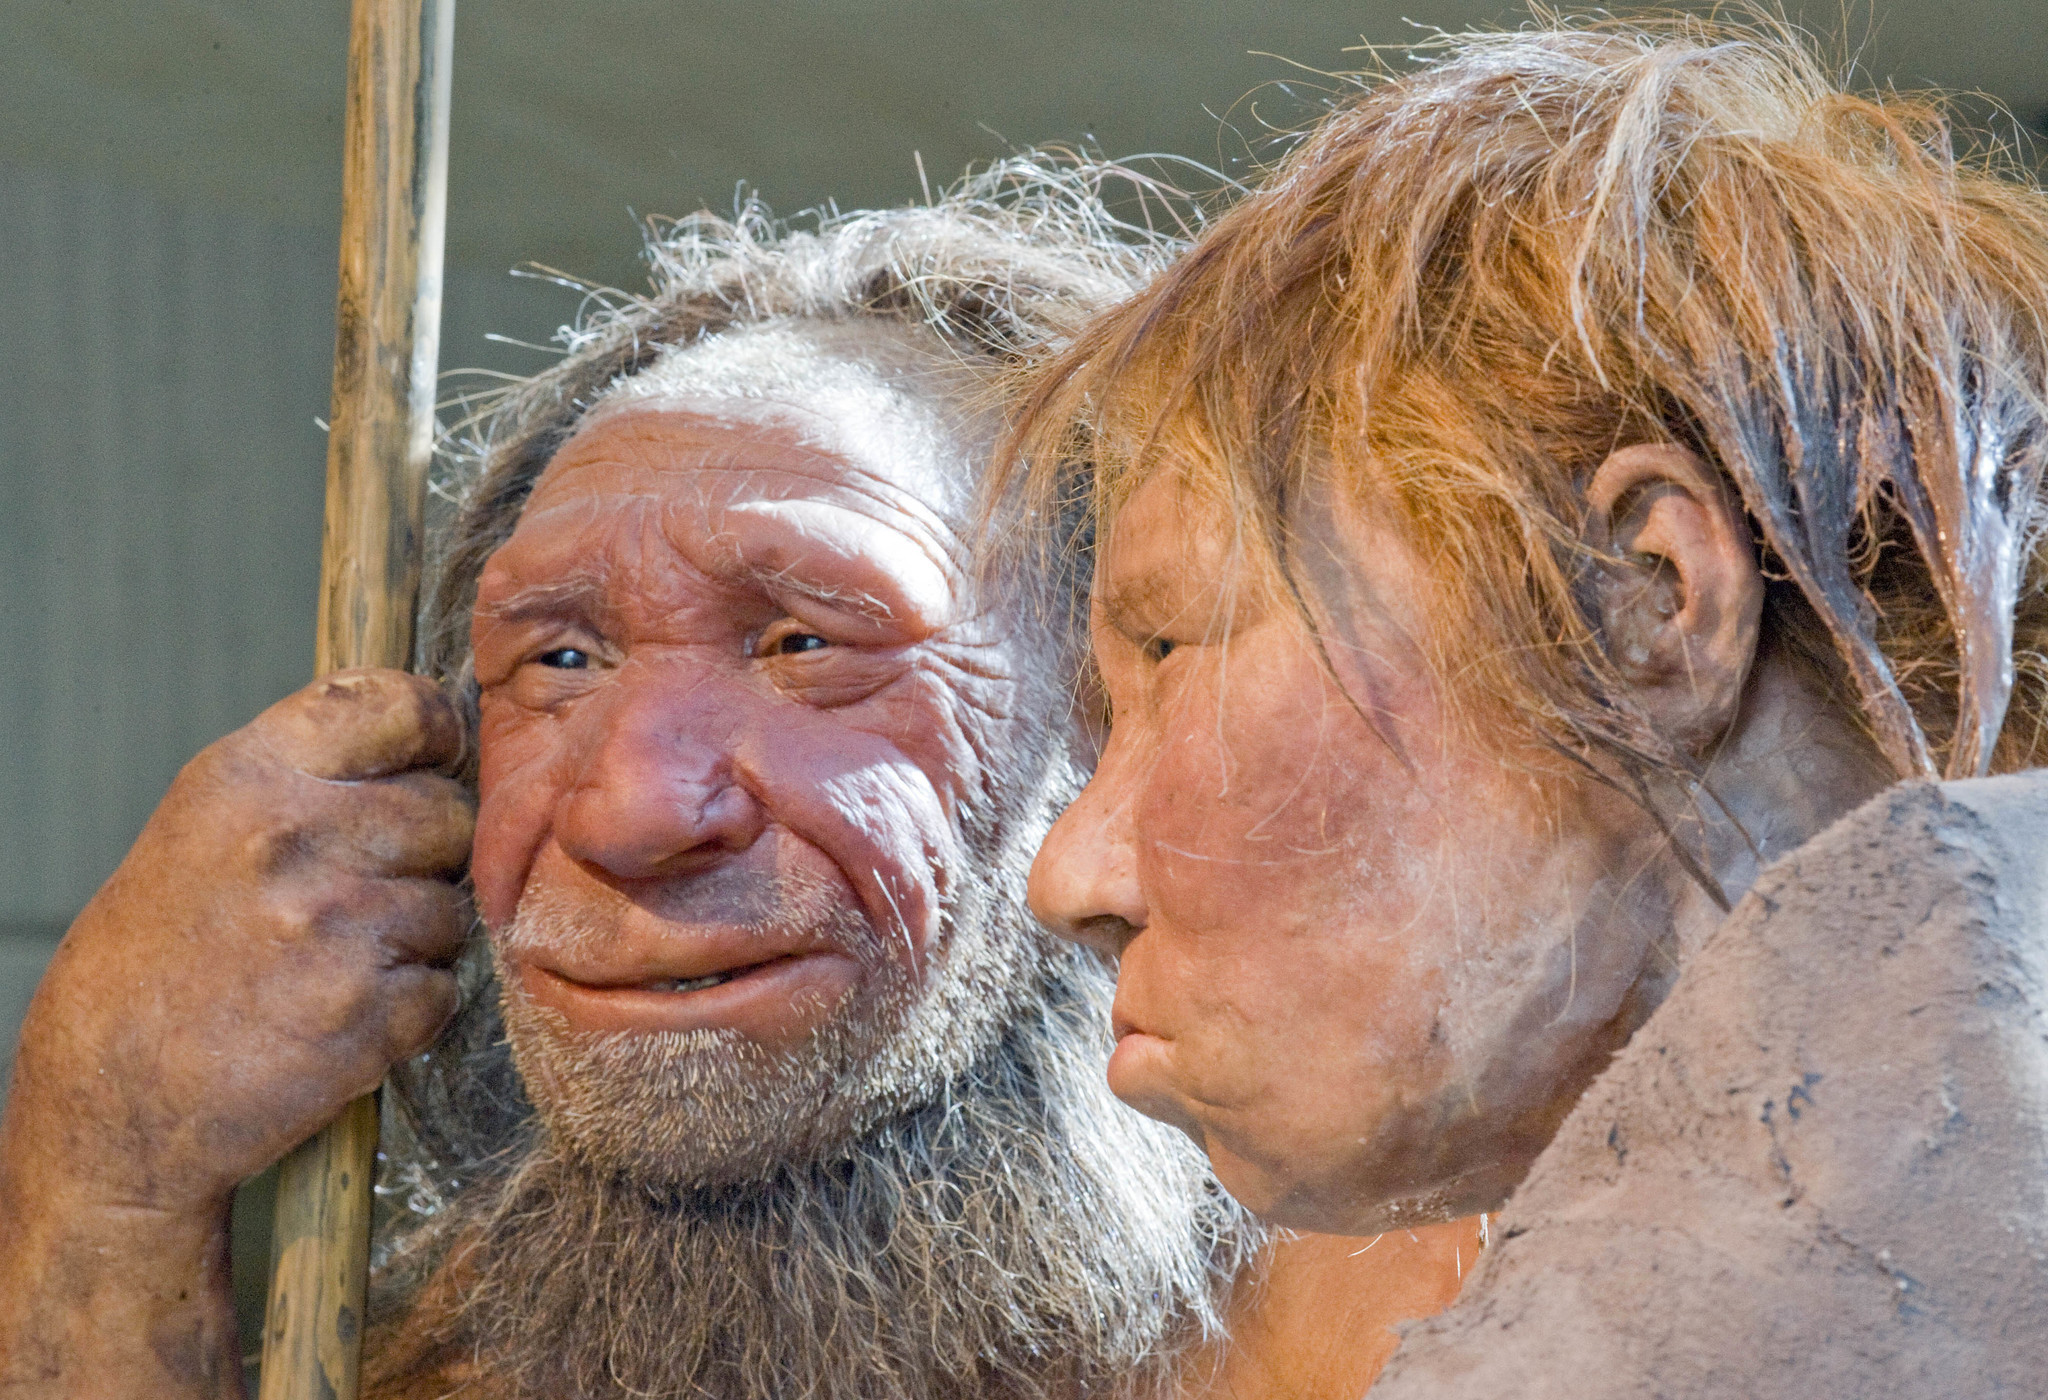 cannibalism For ancient humans, cannibalism wasn't just about nutrition: study -  Chicago Tribune